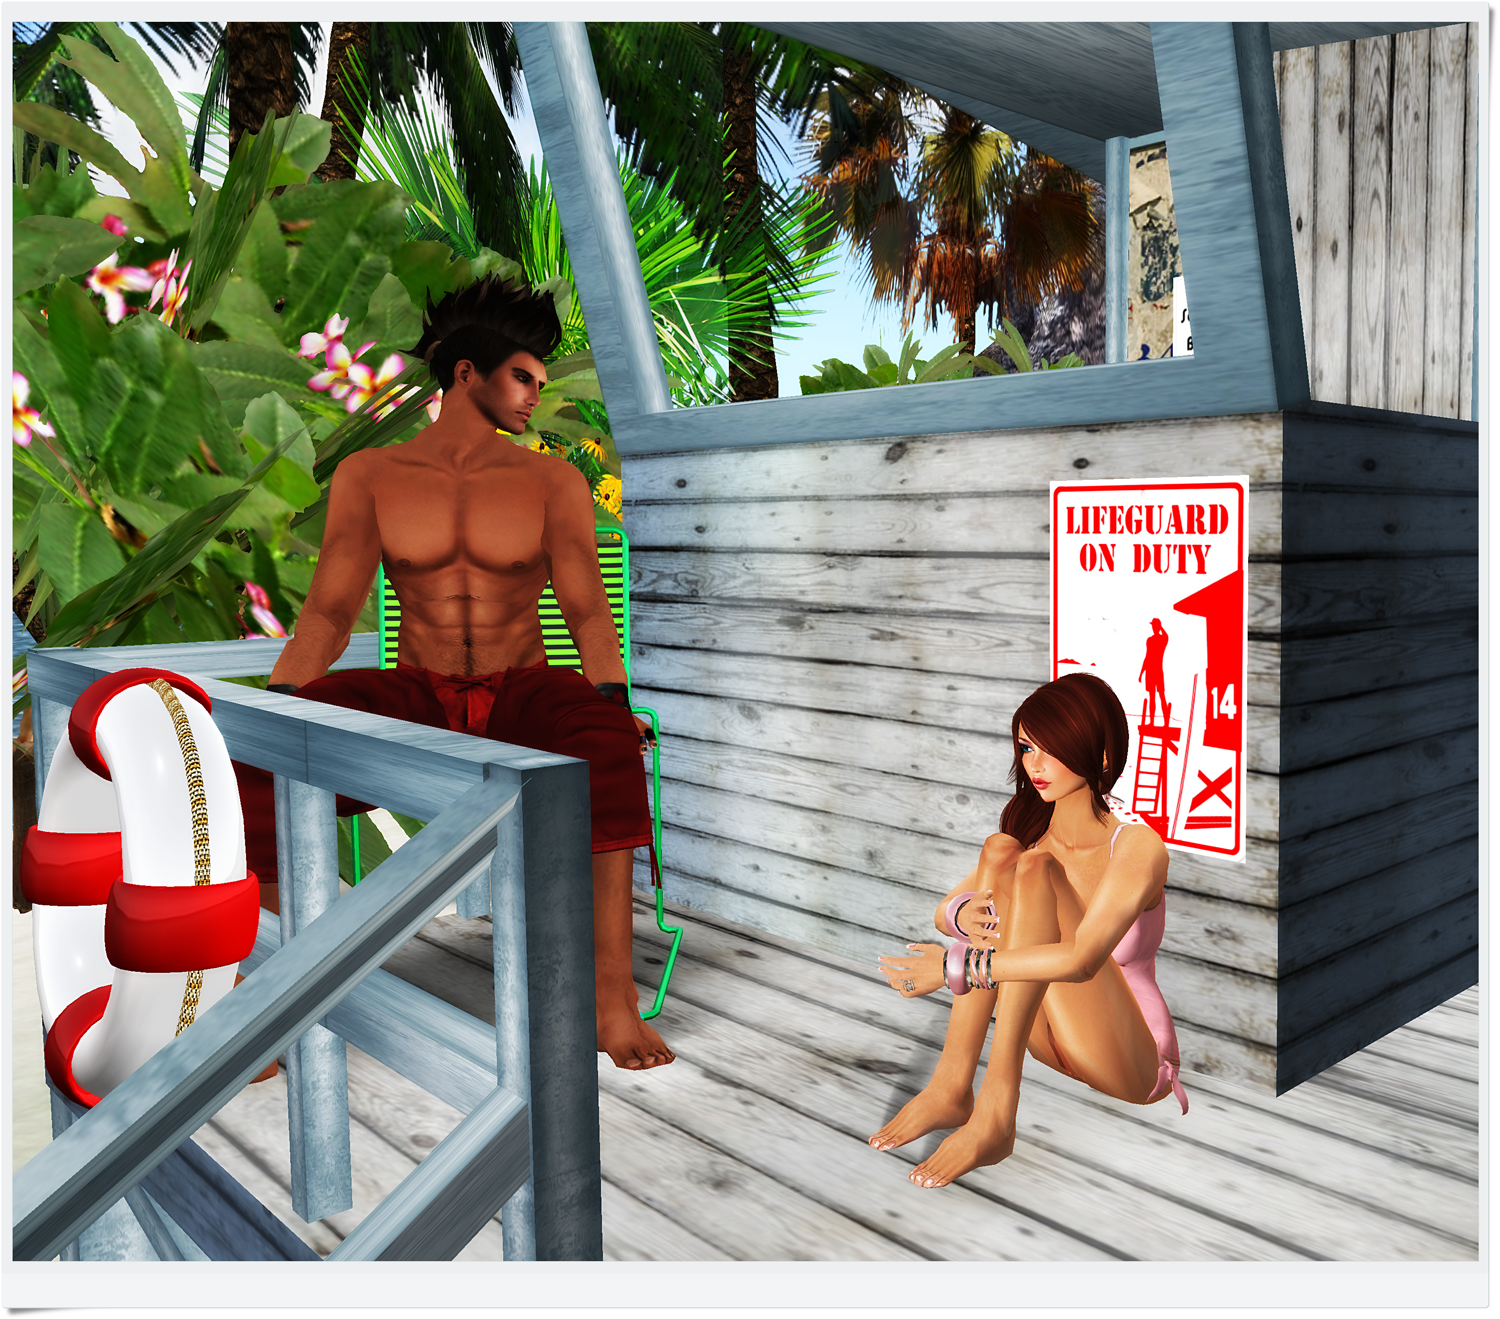 Belle Belle The Naughty Lifeguard